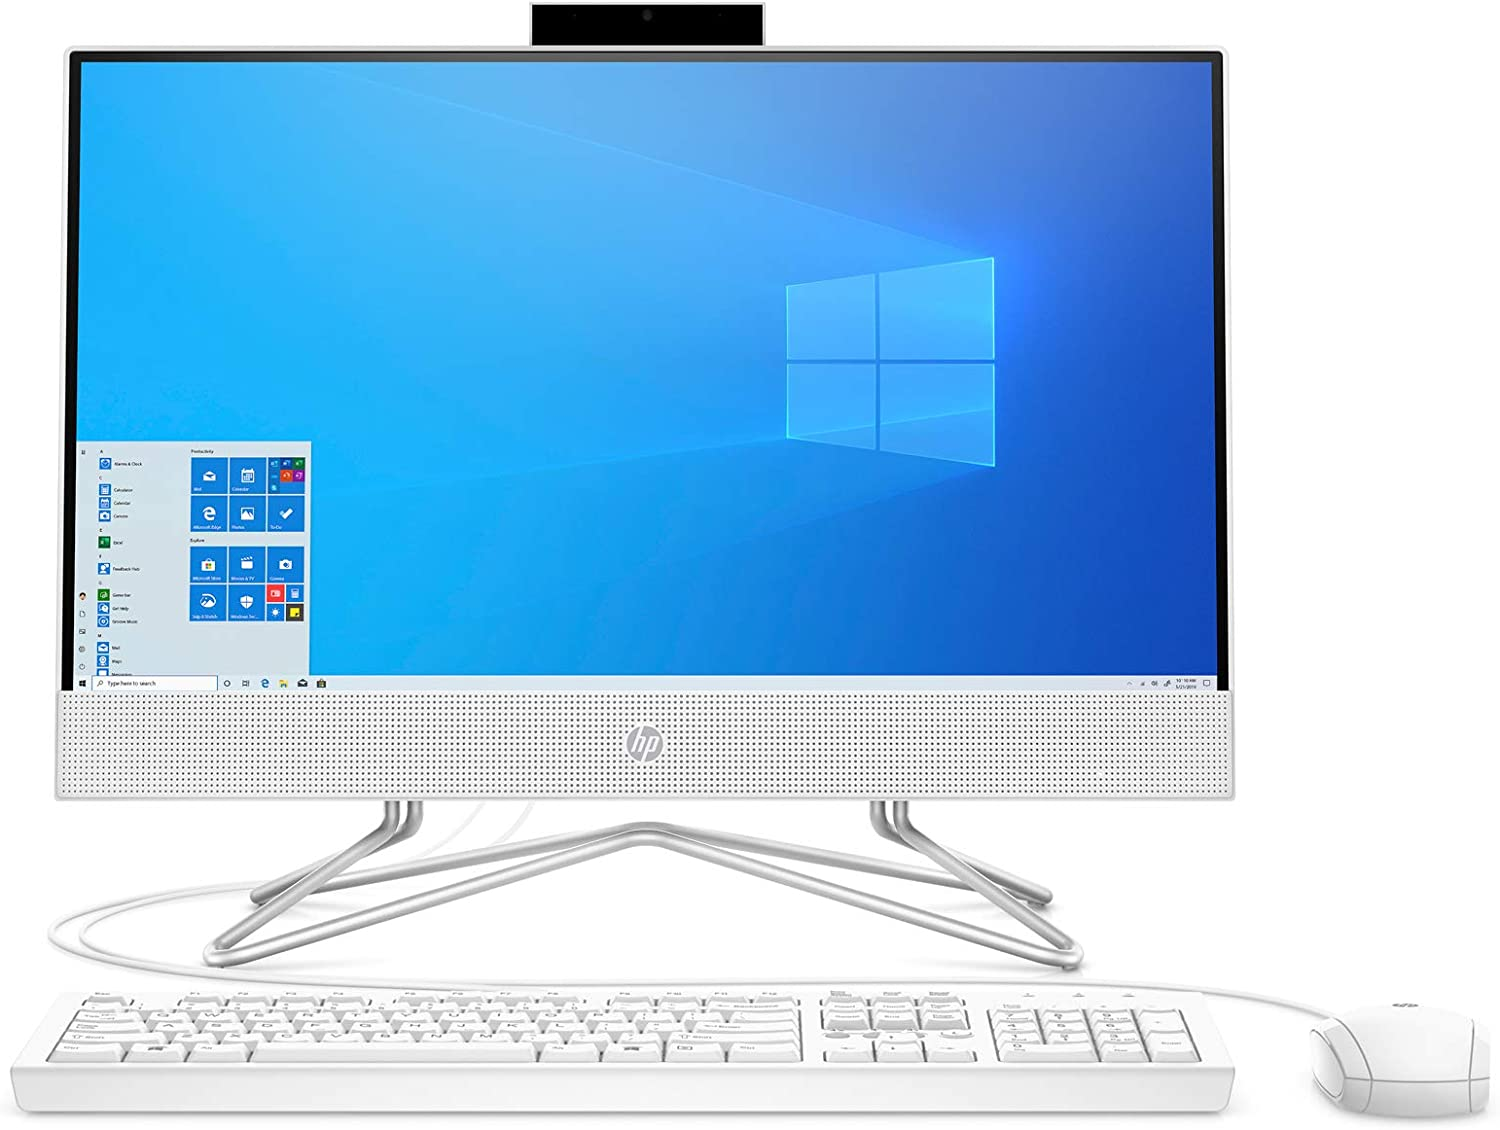 HP Pavilion All-in-One 22-inch Computer, AMD Athlon Gold 3150U, AMD Radeon Graphics, 4 GB RAM, 256 GB SSD, Windows 10 (22-df0022, Snow White) (13Z67AA#ABA)